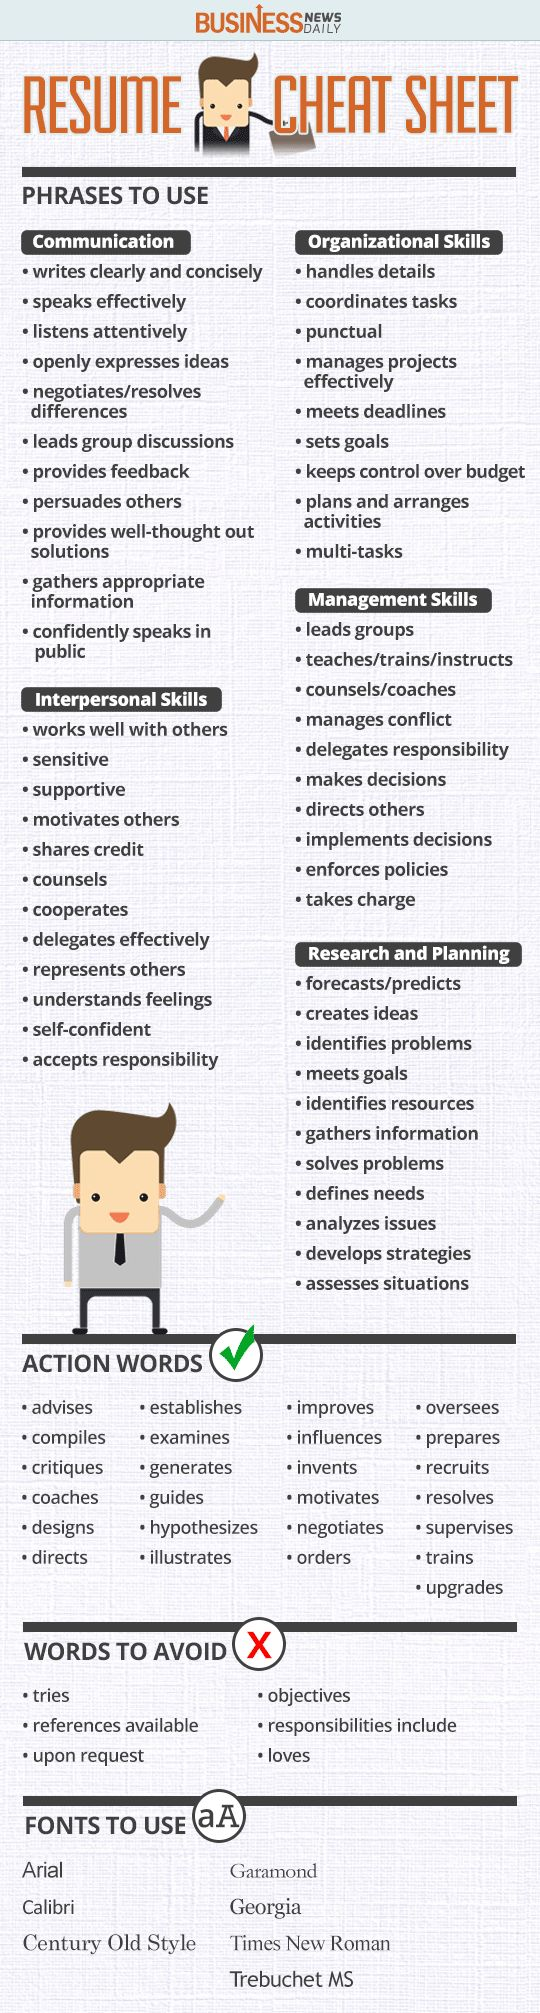 Opposenewapstandardsus  Pleasing  Ideas About Resume On Pinterest  Cv Format Resume Cv And  With Lovable Resume Cheat Sheet Infographic Andrews Almost Done With A Complete Unit On Employment Which With Adorable Waitress Responsibilities Resume Also Examples Resumes In Addition Medical Billing Resume Examples And Rn Job Description For Resume As Well As Resume Cover Page Examples Additionally Resume For Students With No Experience From Pinterestcom With Opposenewapstandardsus  Lovable  Ideas About Resume On Pinterest  Cv Format Resume Cv And  With Adorable Resume Cheat Sheet Infographic Andrews Almost Done With A Complete Unit On Employment Which And Pleasing Waitress Responsibilities Resume Also Examples Resumes In Addition Medical Billing Resume Examples From Pinterestcom